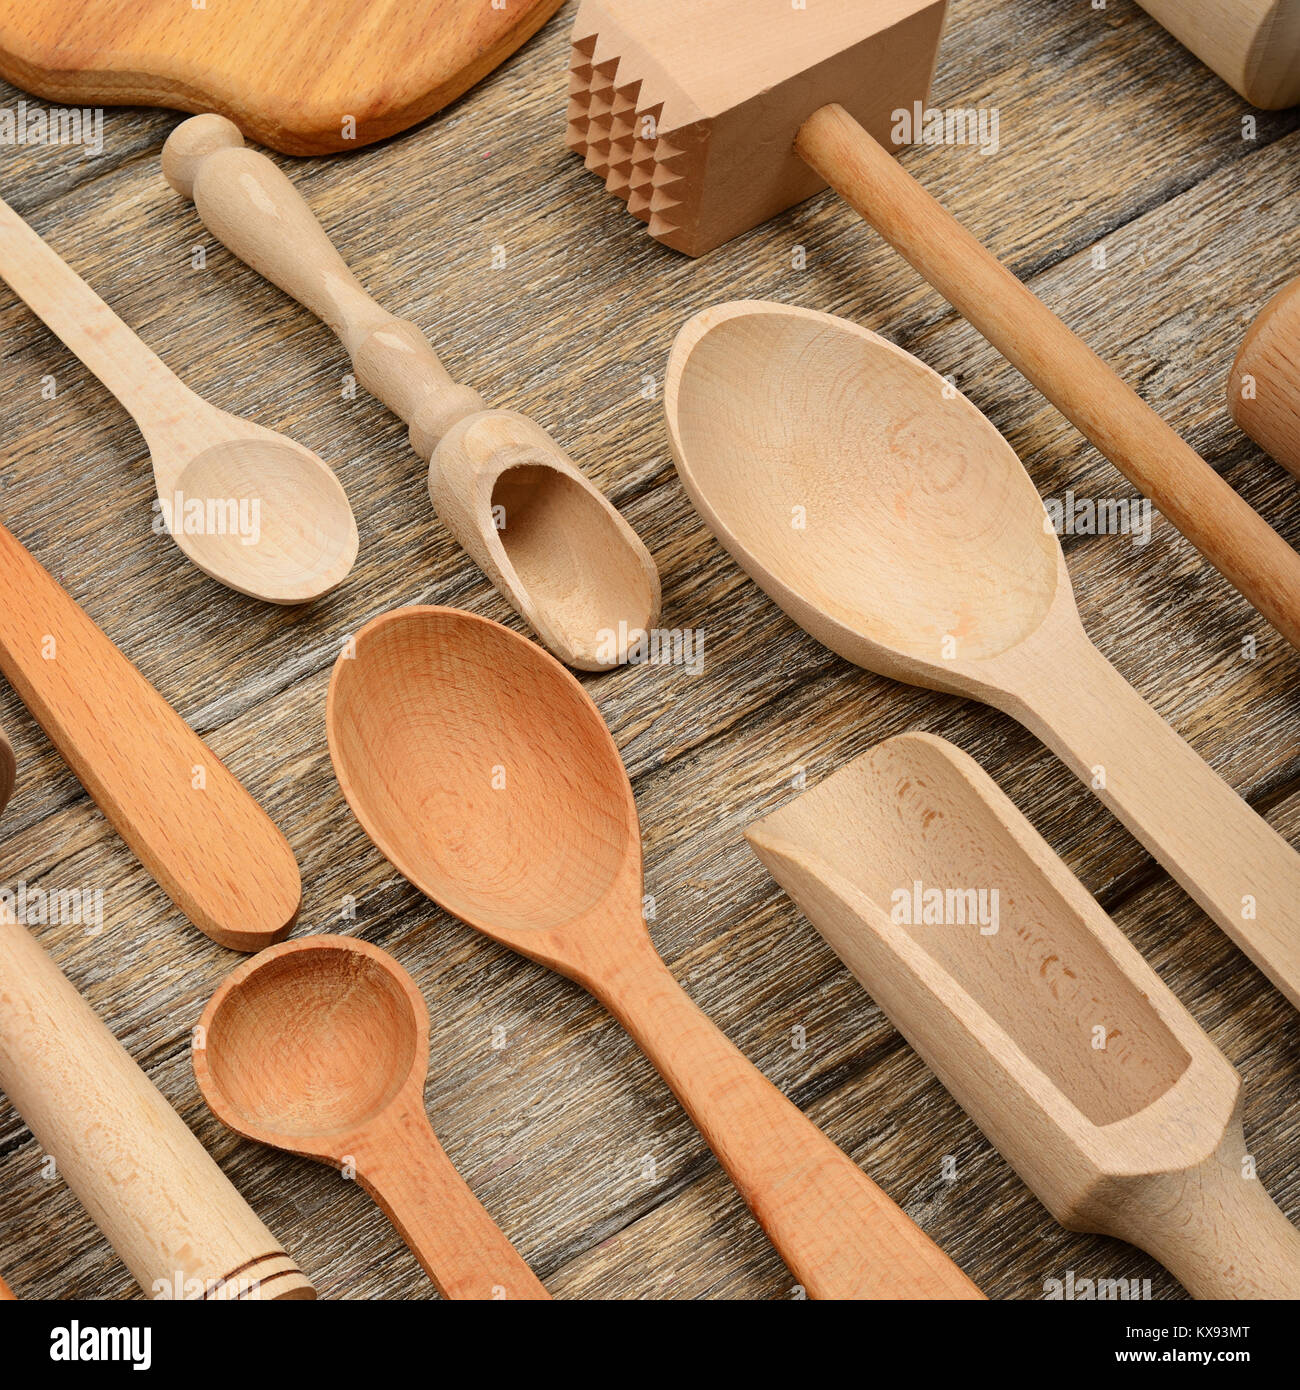 Set kitchen utensils on wooden table. Spoon, fork, rolling pin, hammer kitchen, kitchen spatula. Top view. - Stock Image